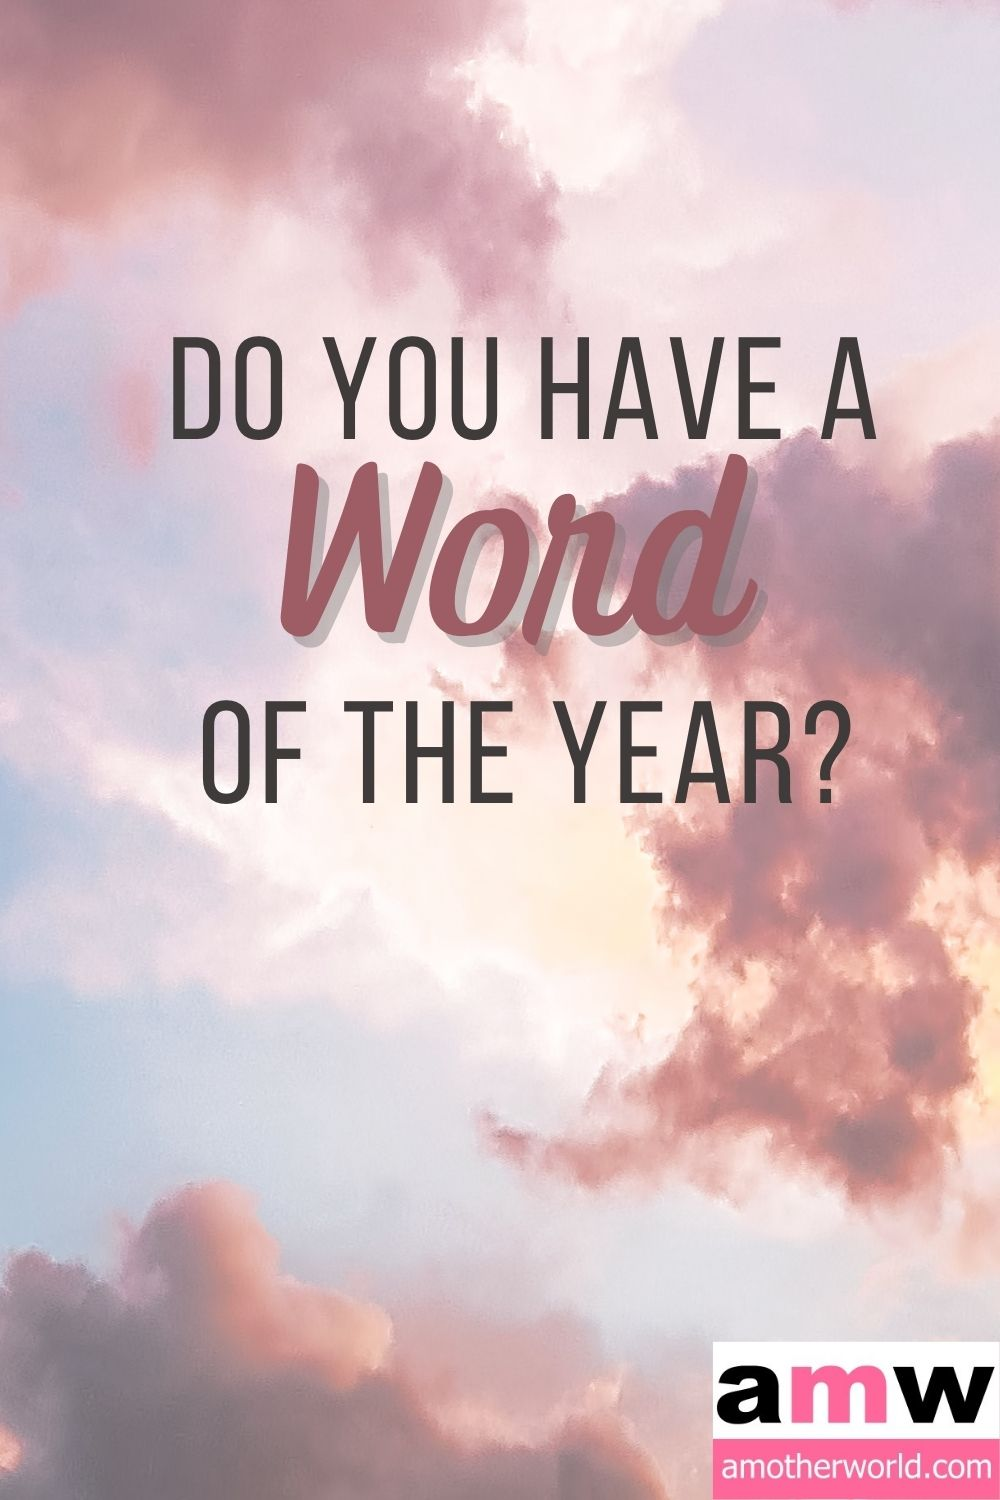 Do You Have a Word of the Year for 2021?